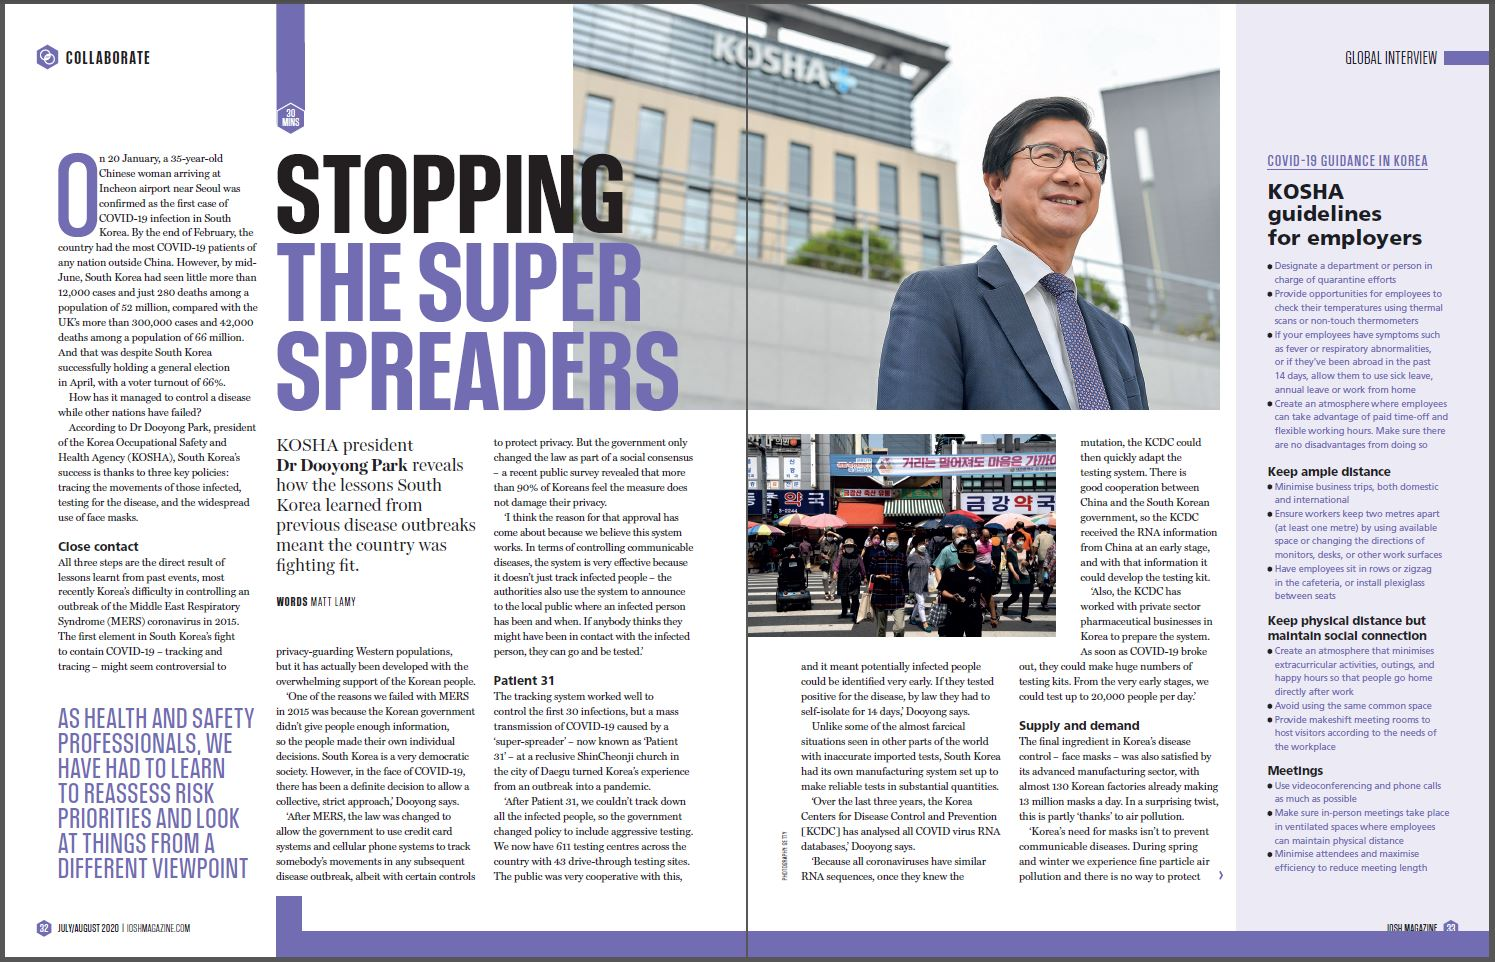 Stopping the Super Spreads_Dr. Dooyong Park, interview with IOSH, UK